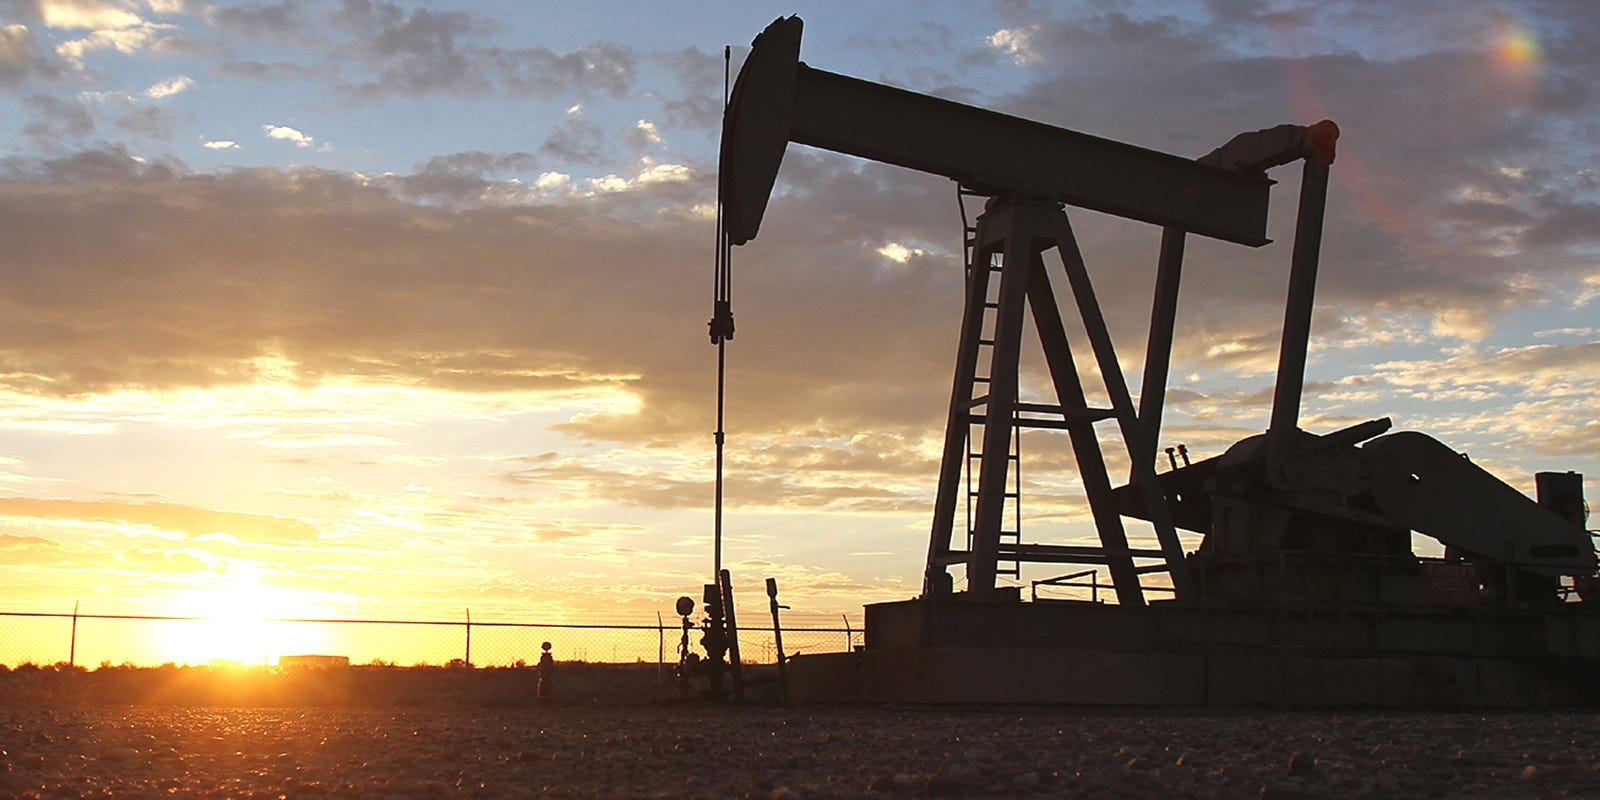 Eagle Ford shale in South Texas sees drilling comeback